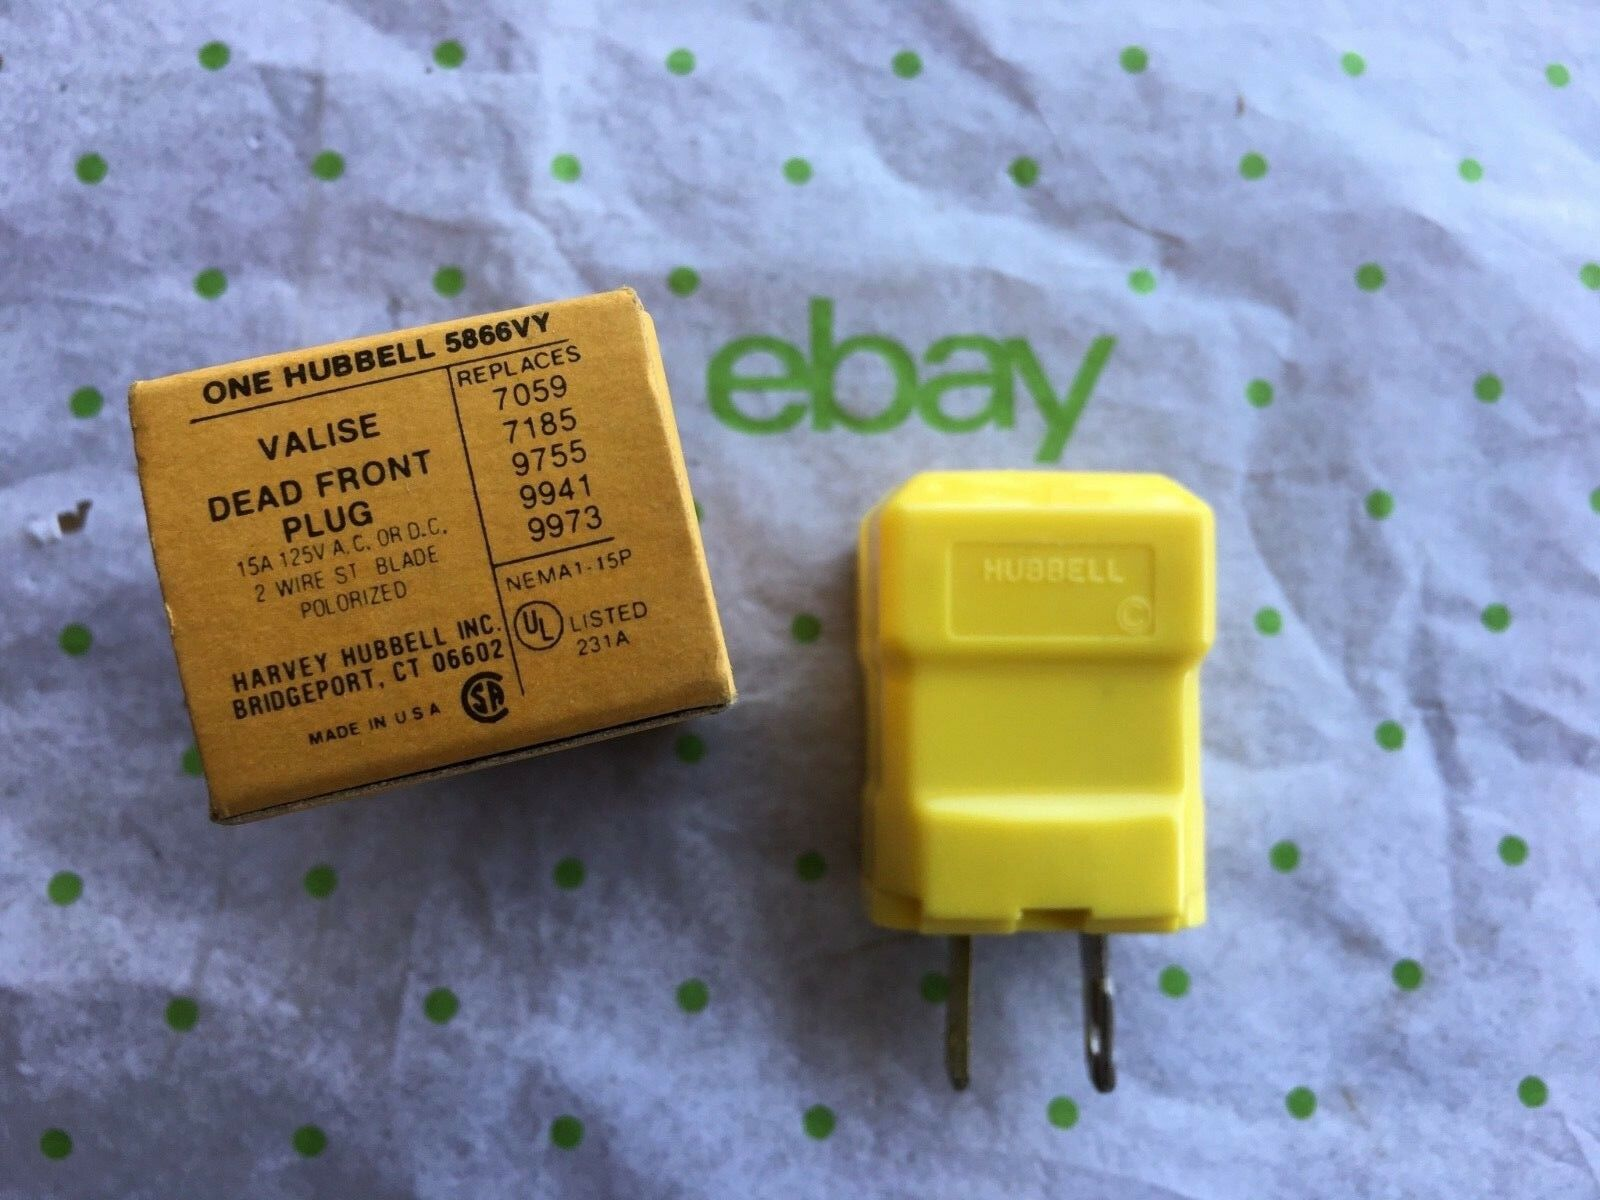 Hubbell Hbl5866vy Valise Plug 15 Amp 125v 1 15p Yellow Ebay Extension Cord Replacement Electrical Plugs 15amp 3 Prong